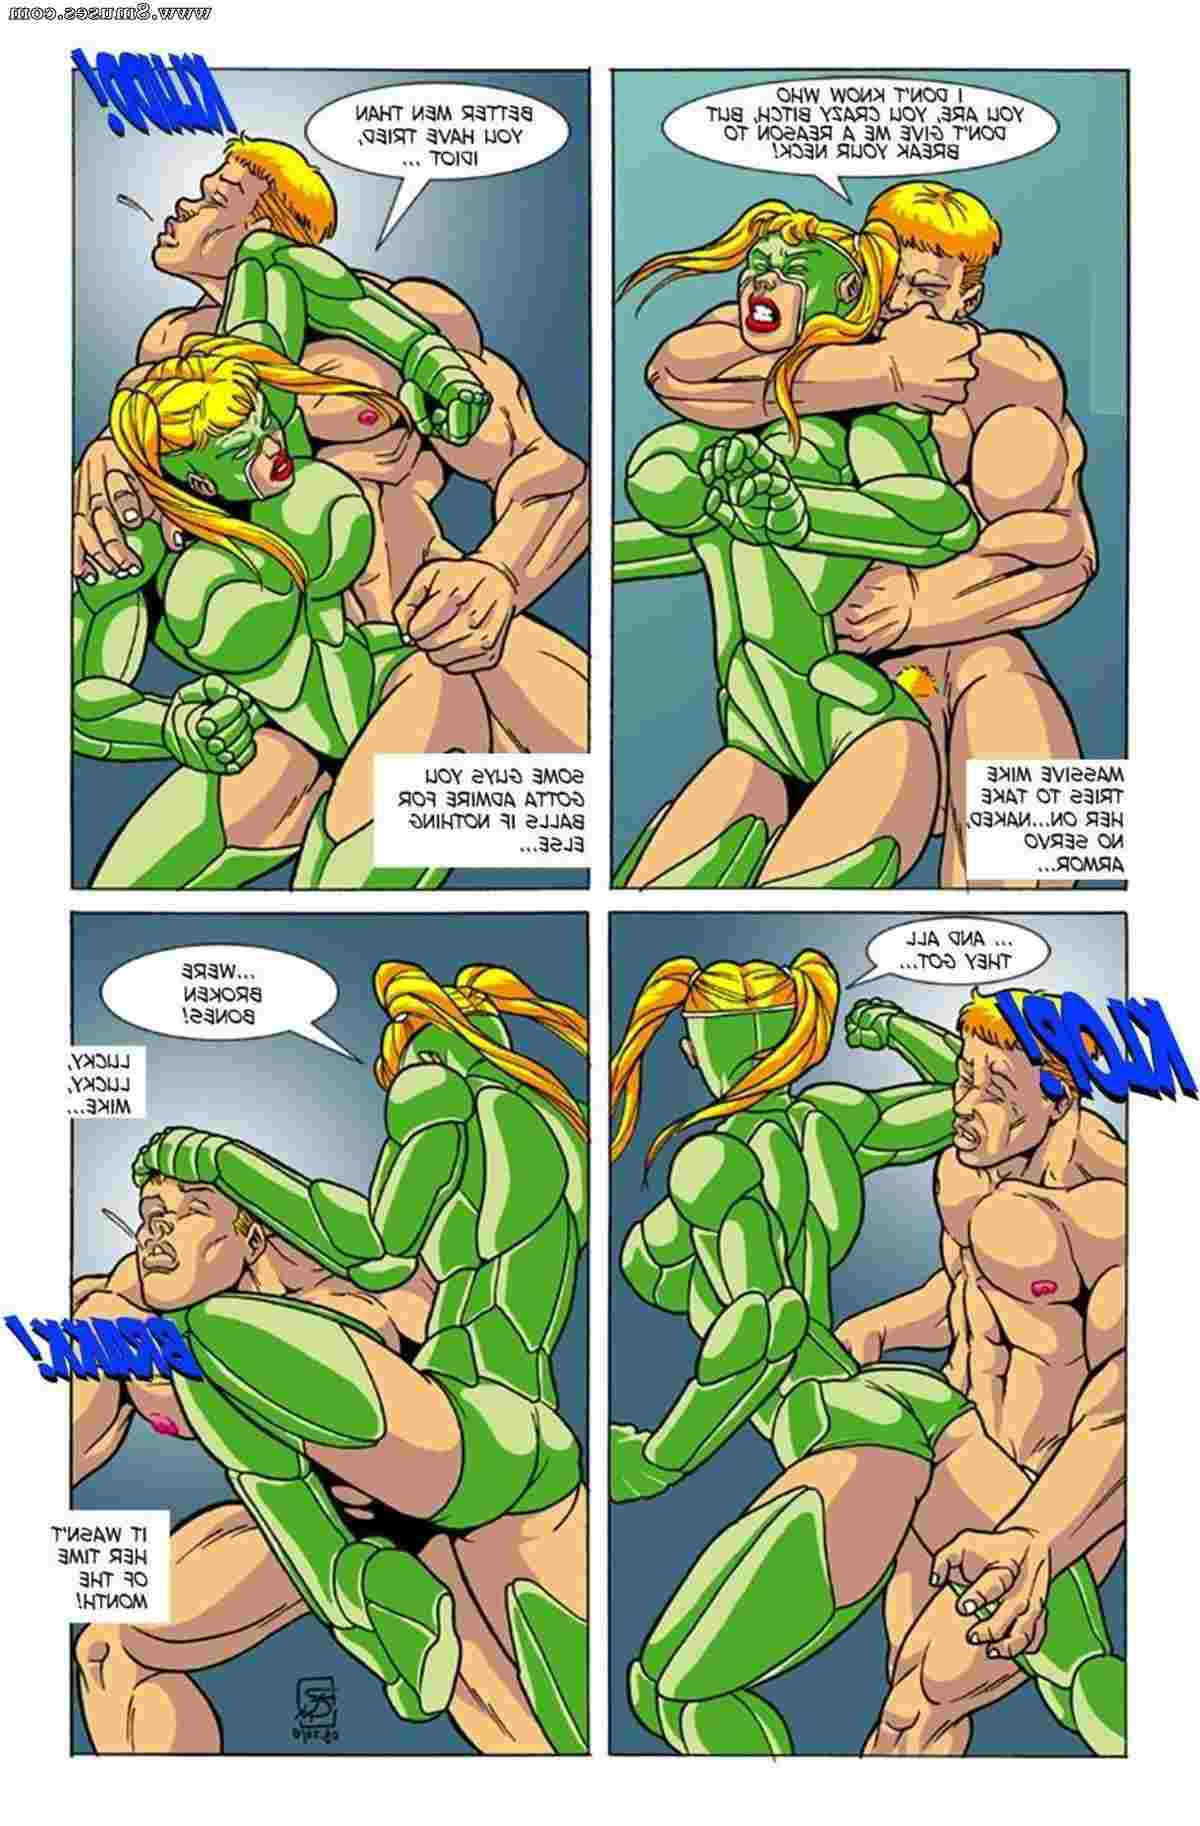 Central-Comics/Monster-Babe-Central/Omega-Fighters Omega_Fighters__8muses_-_Sex_and_Porn_Comics_13.jpg